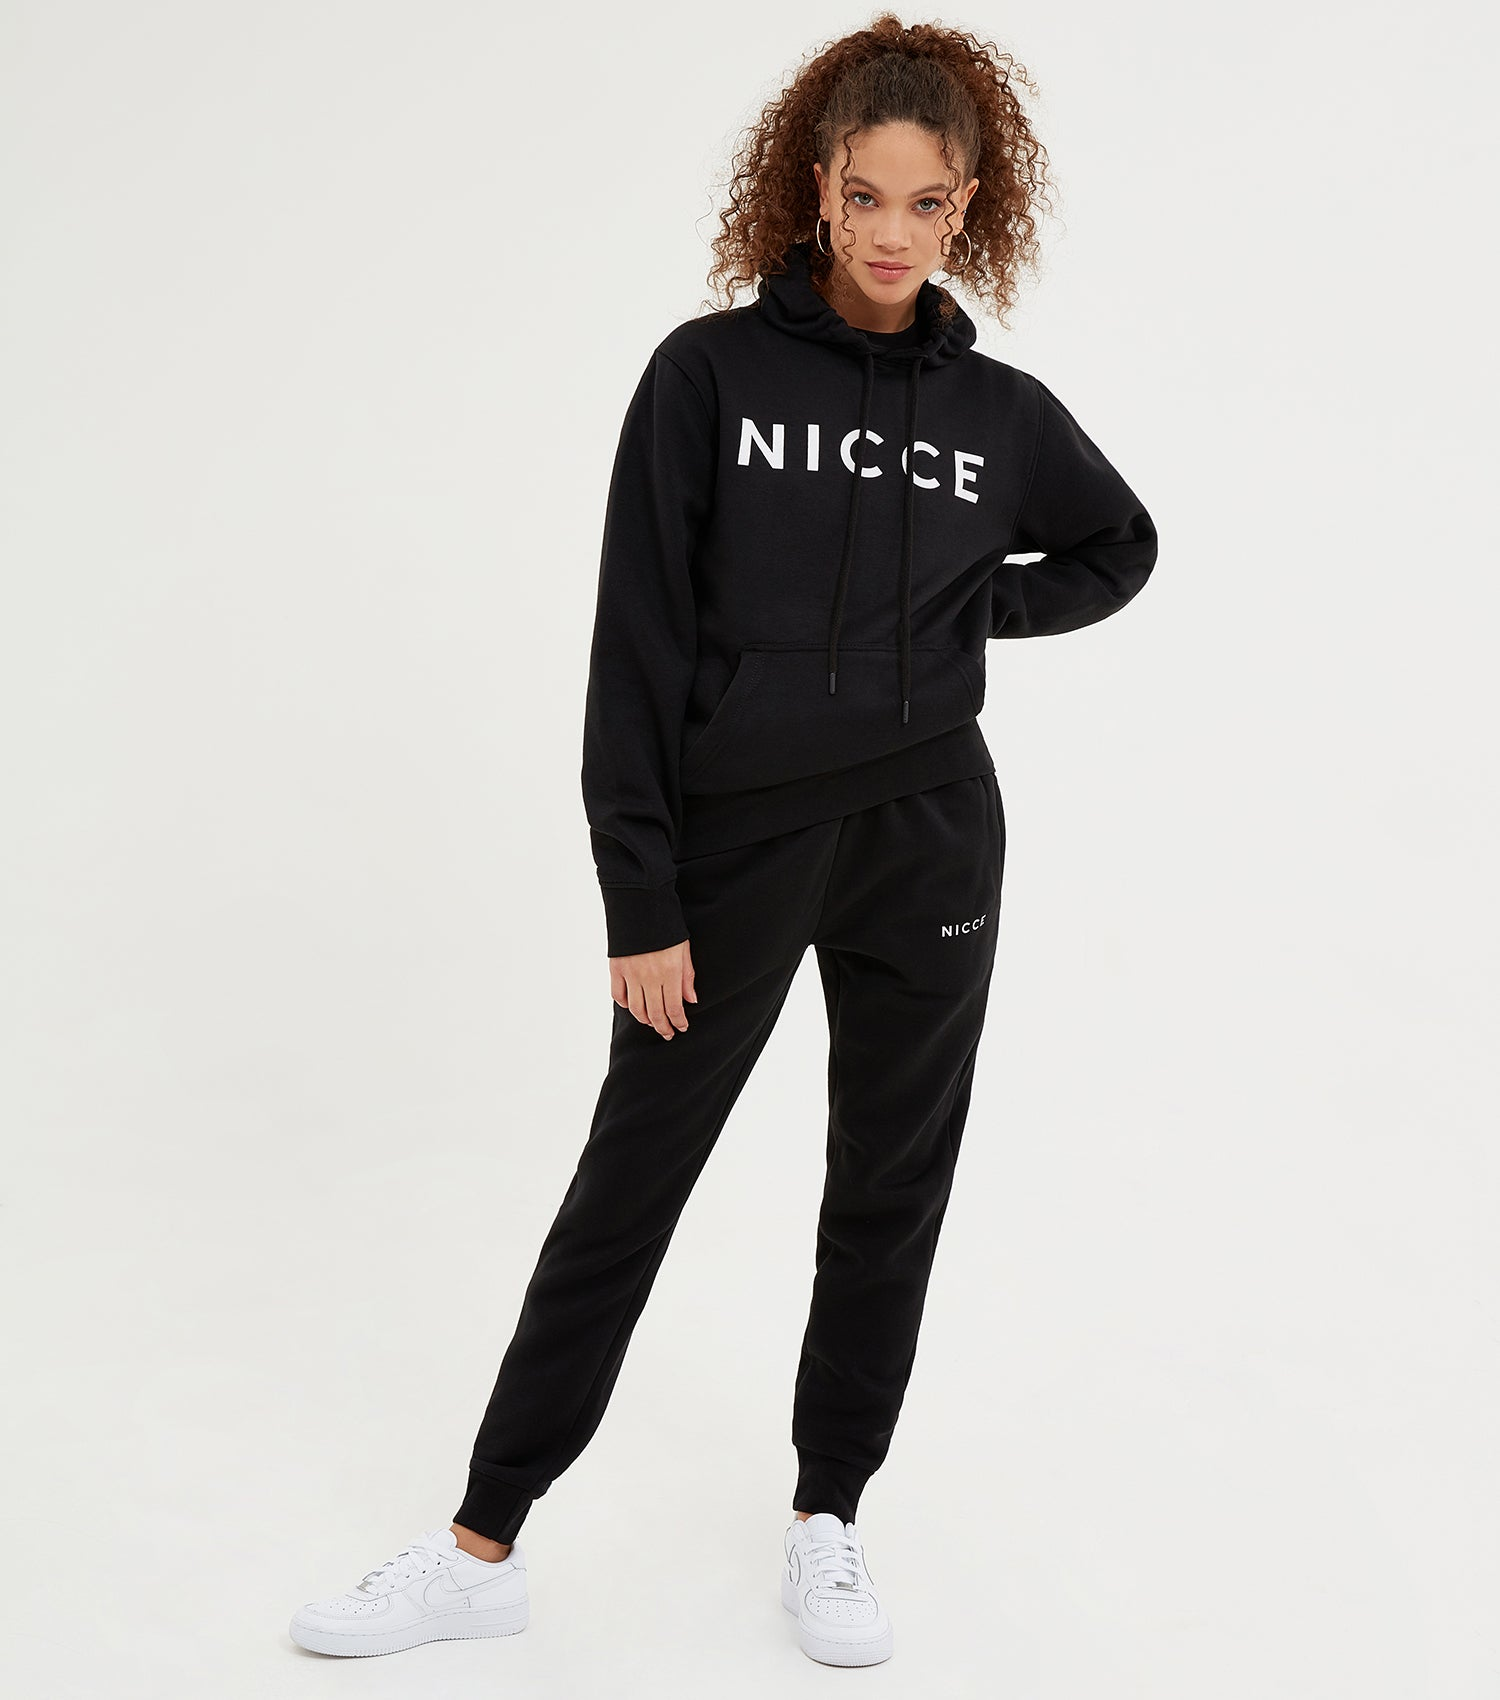 NICCE Womens Original Hood | Black, Hoodies